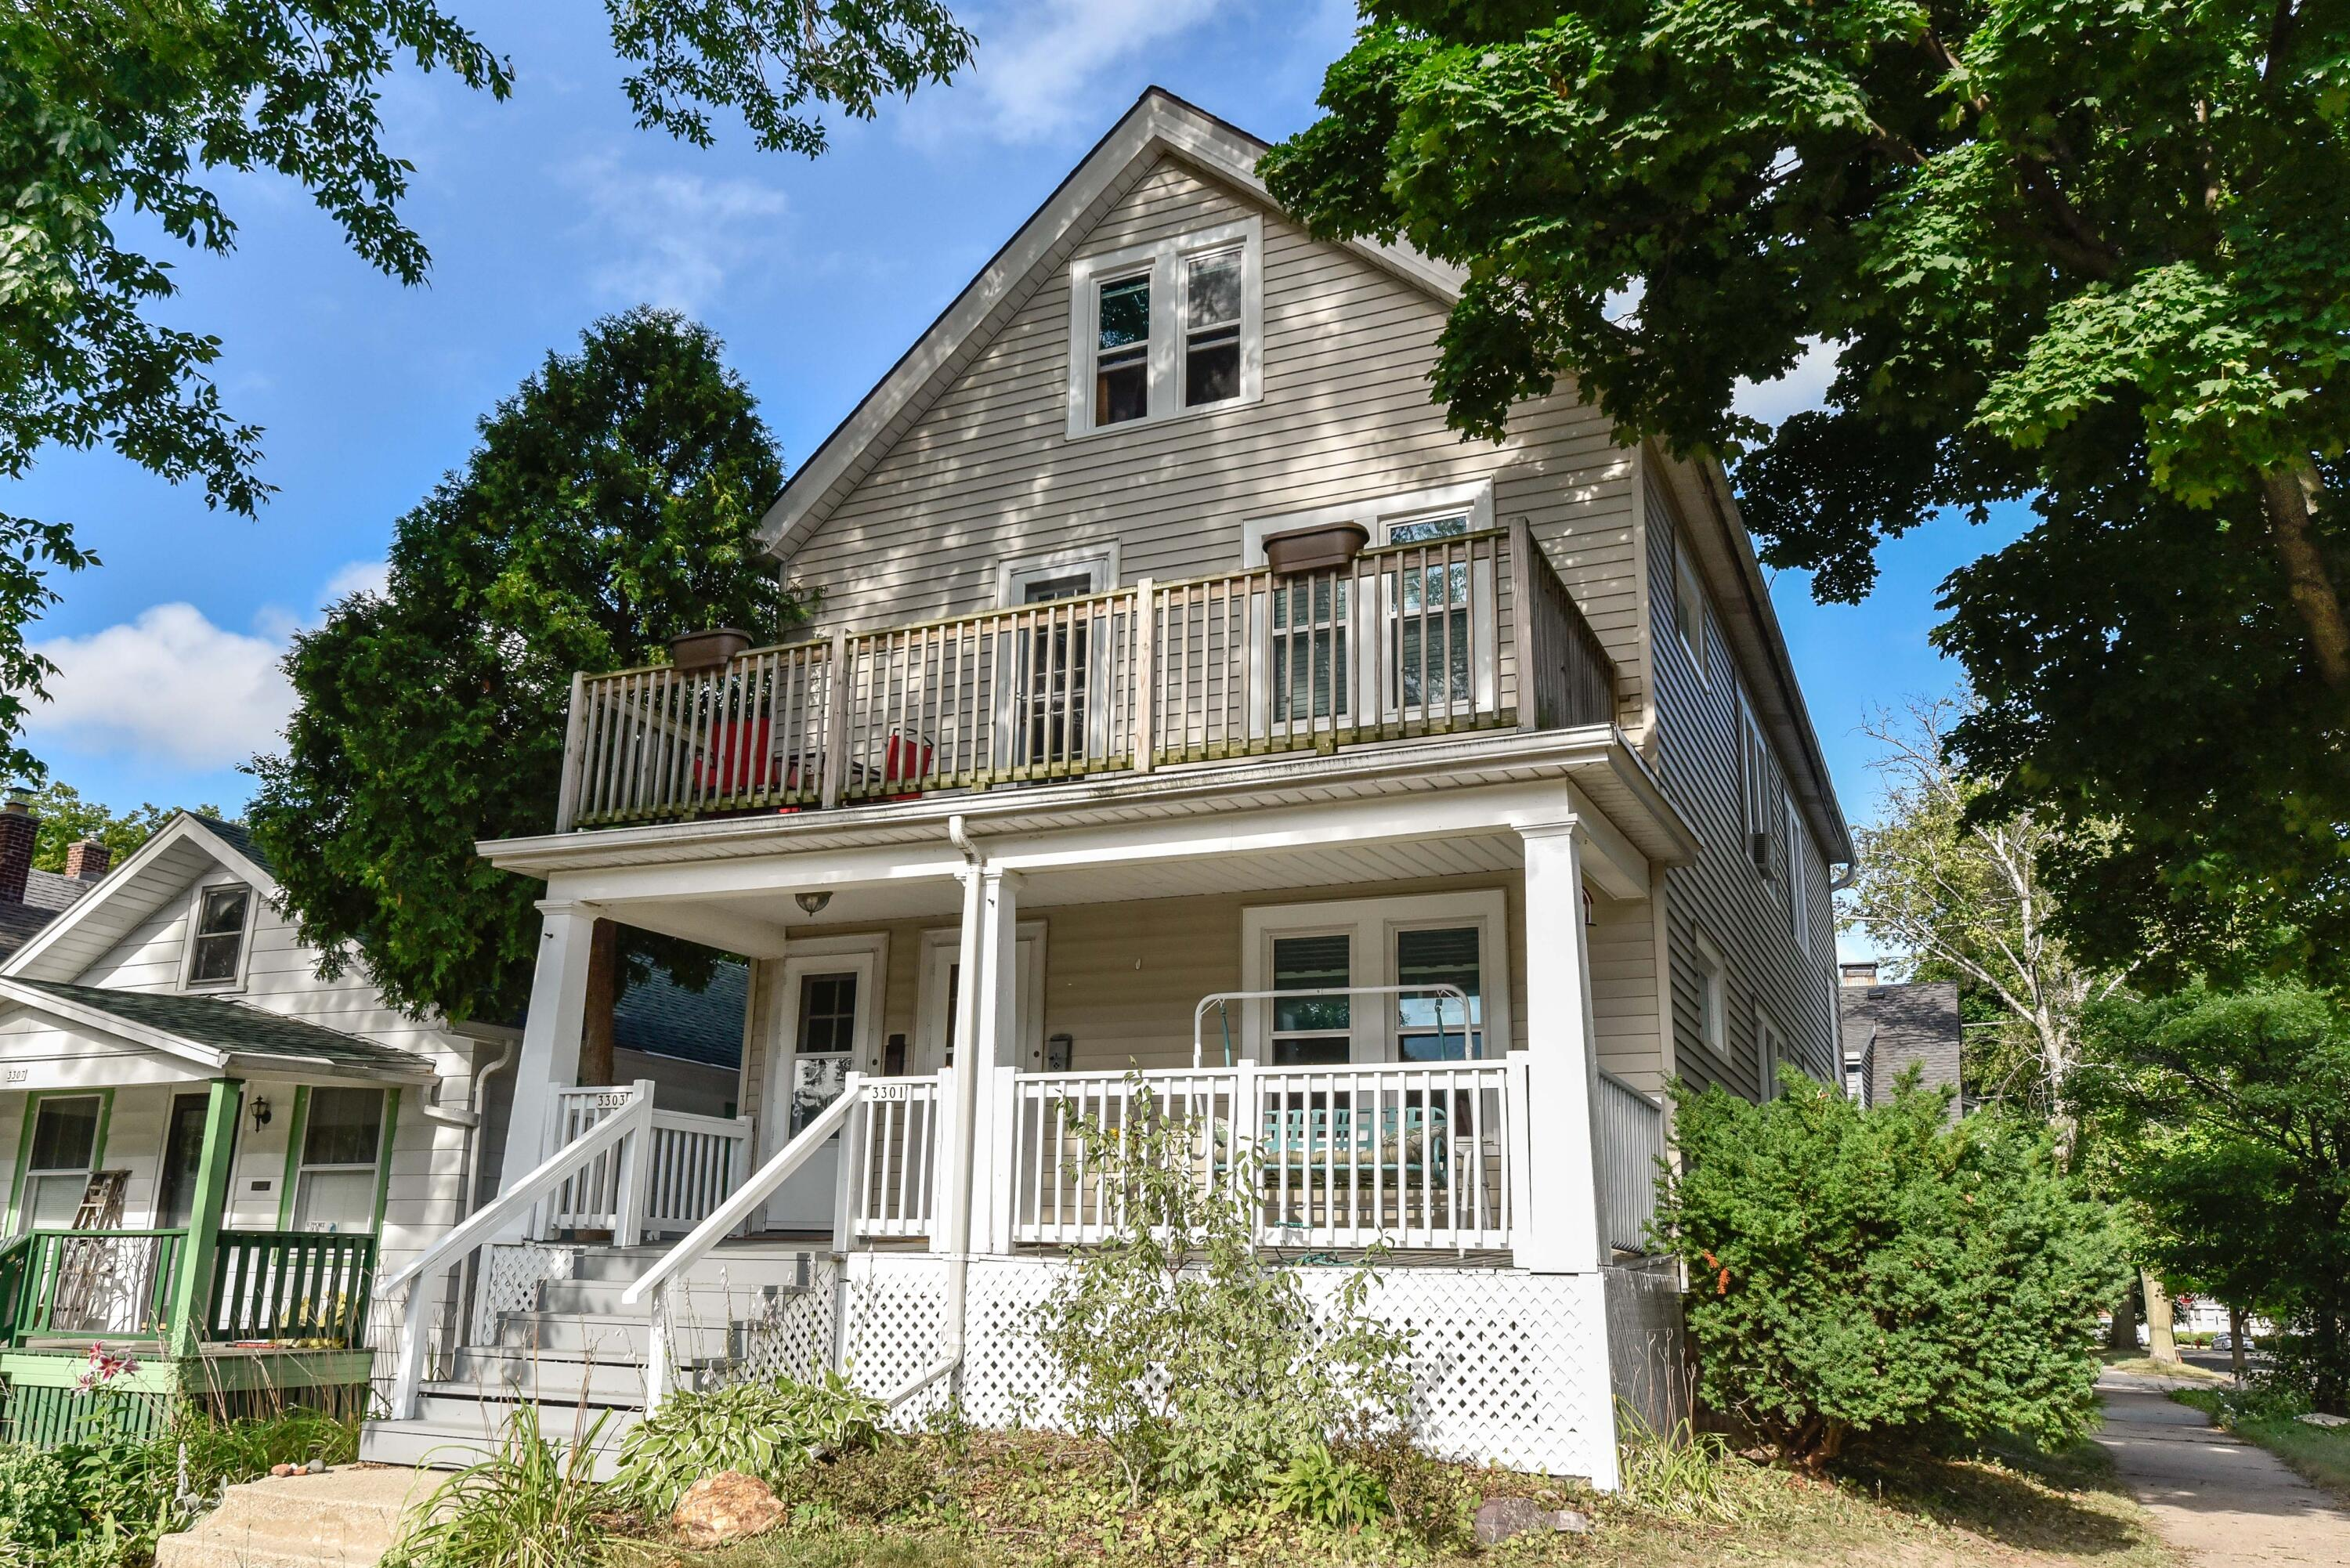 3301 New York, Milwaukee, Wisconsin 53207, 2 Bedrooms Bedrooms, 5 Rooms Rooms,1 BathroomBathrooms,Two-Family,For Sale,New York,1,1755594